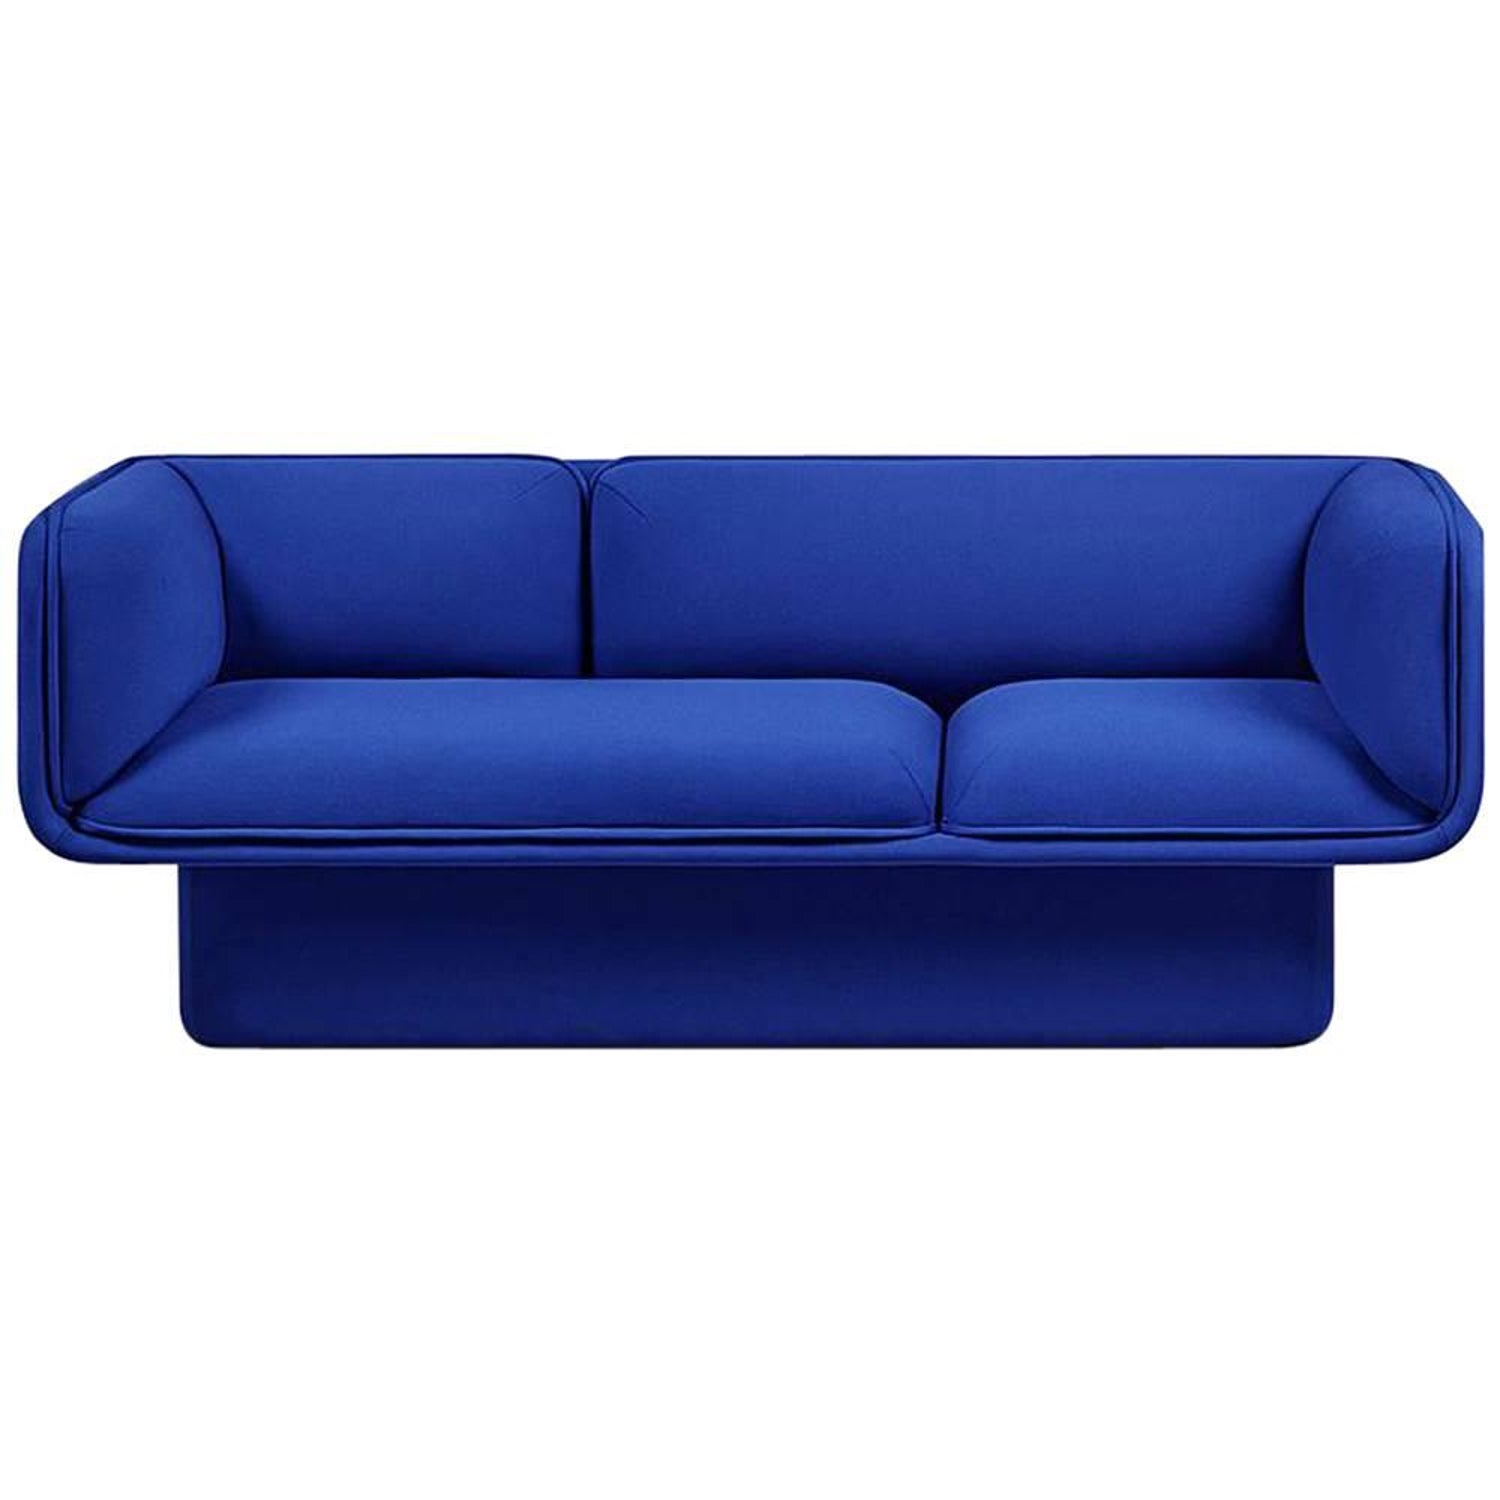 Block Blue Sofa Studio Mut For Sale at 1stdibs